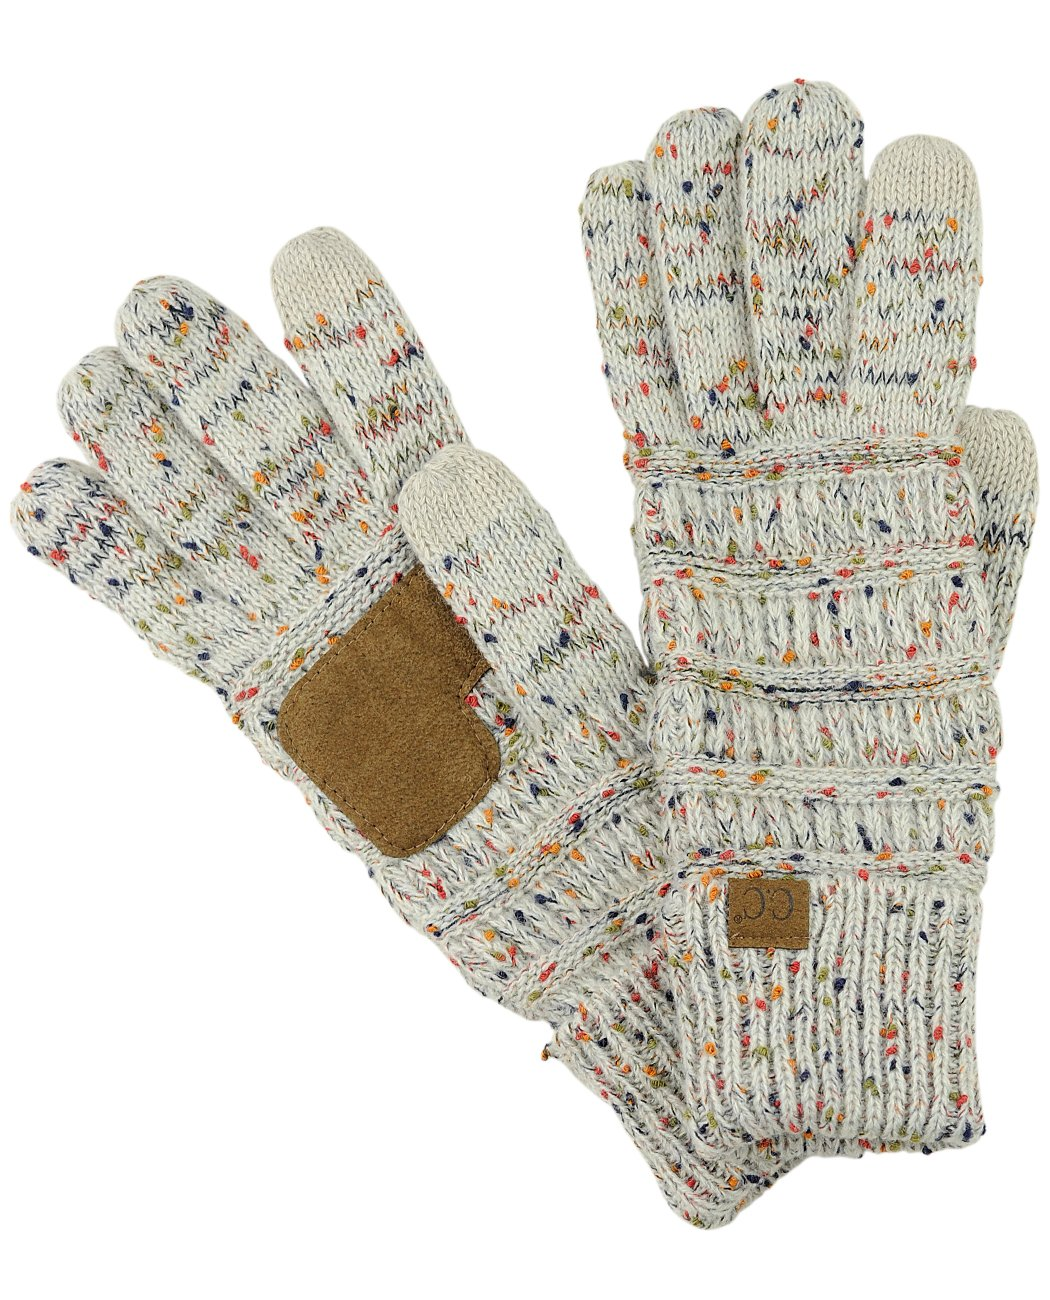 C.C Unisex Cable Knit Winter Warm Anti-Slip Touchscreen Texting Gloves, Confetti Oatmeal by C.C